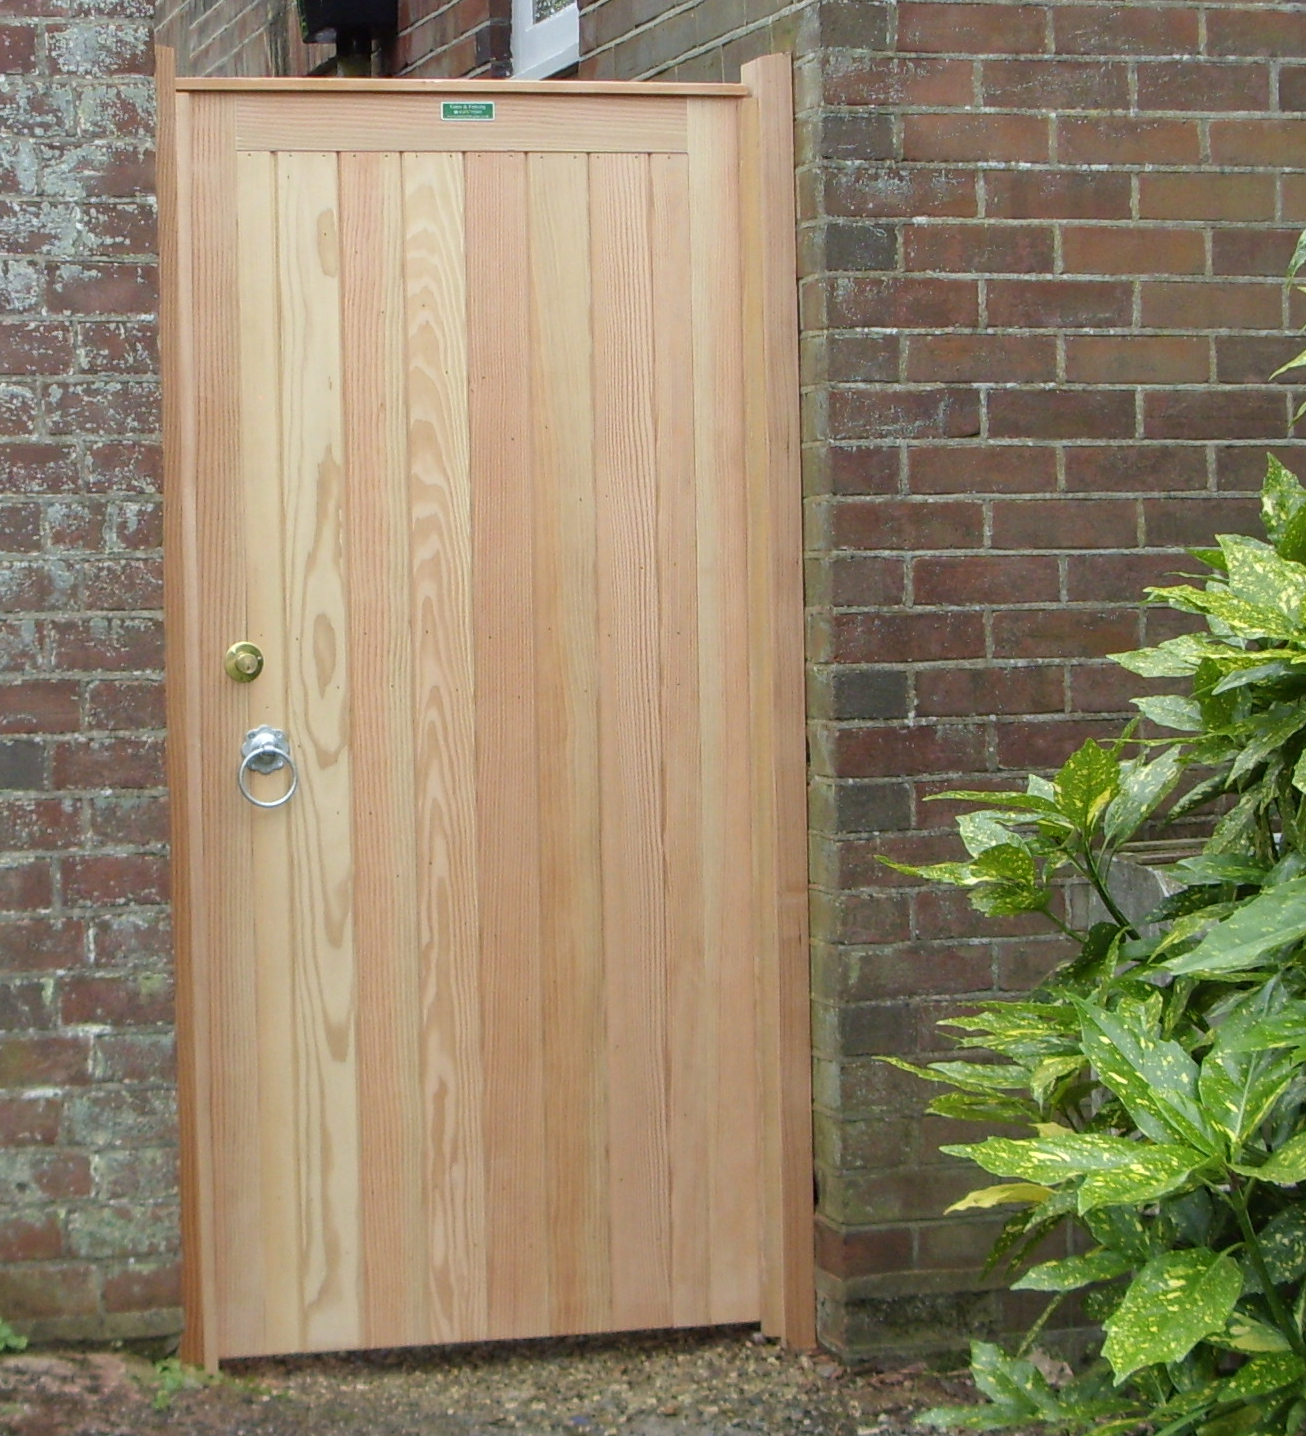 Glemham gate in Douglas Fir with Cylinder gate lock fitted